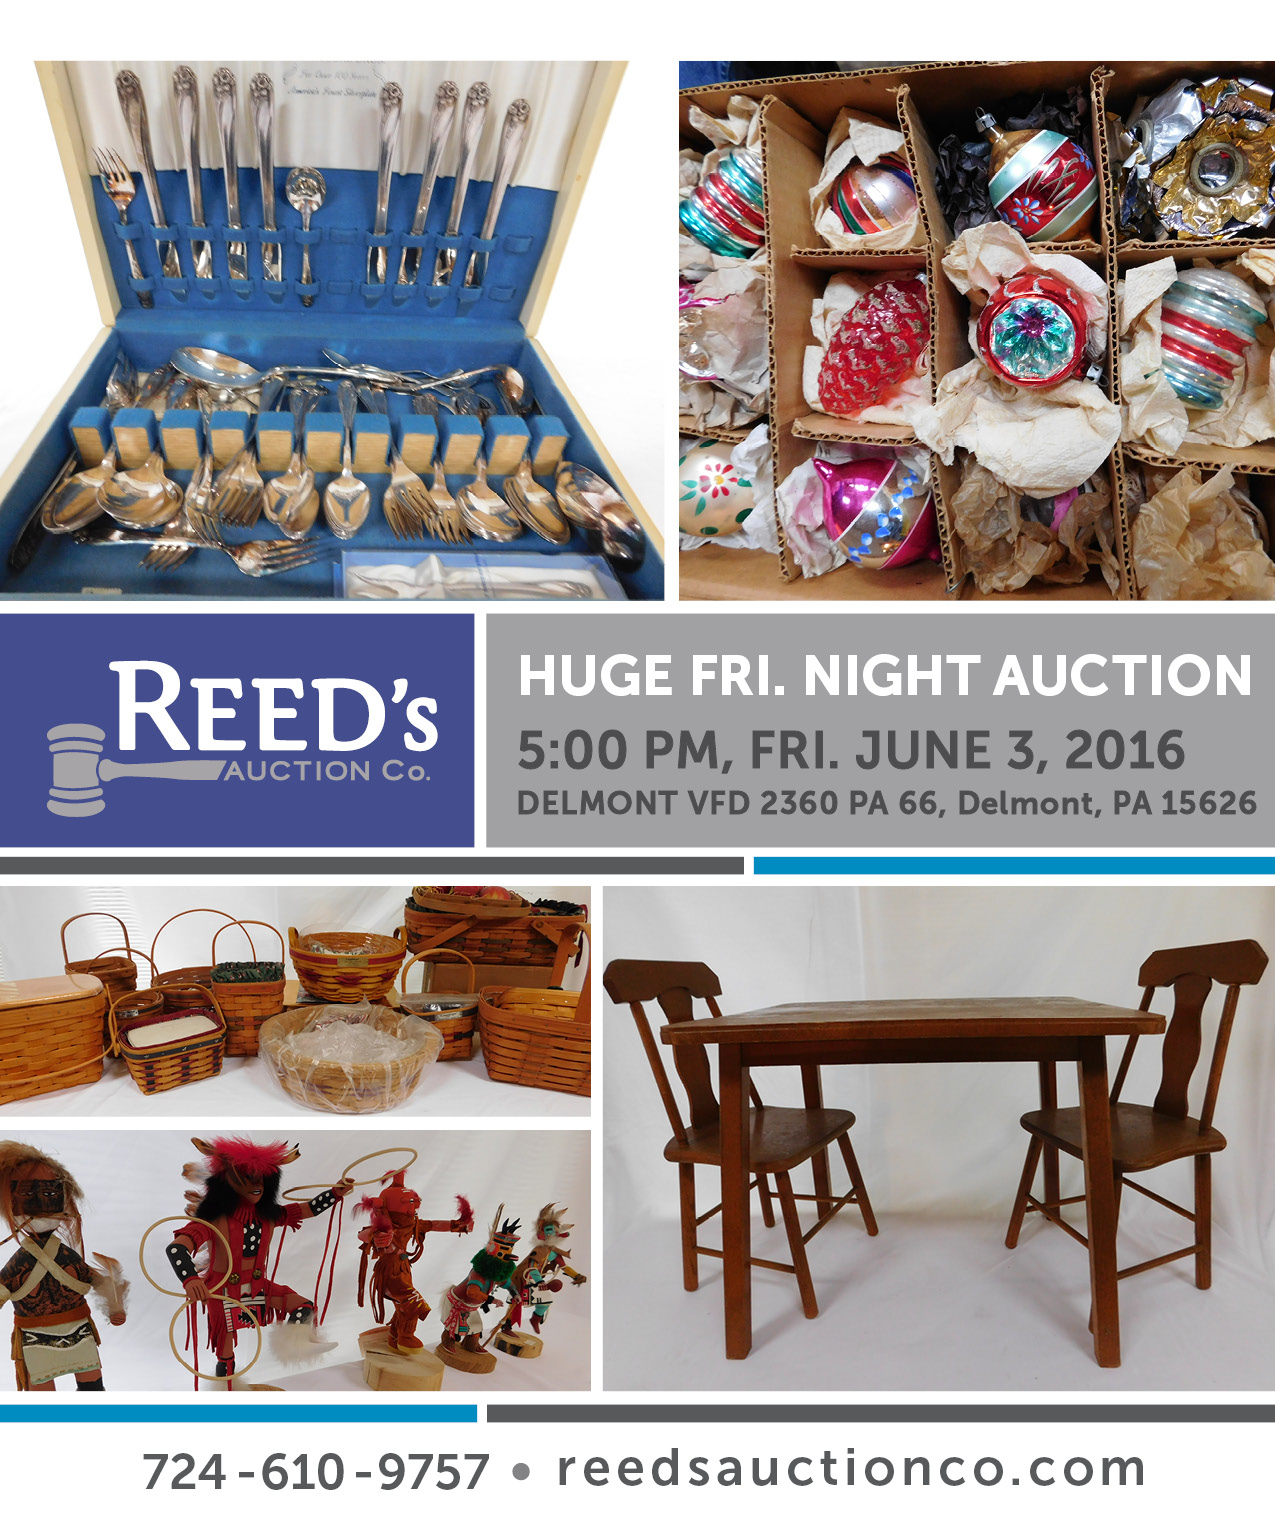 FB Reeds Auction 6-3-16.jpg